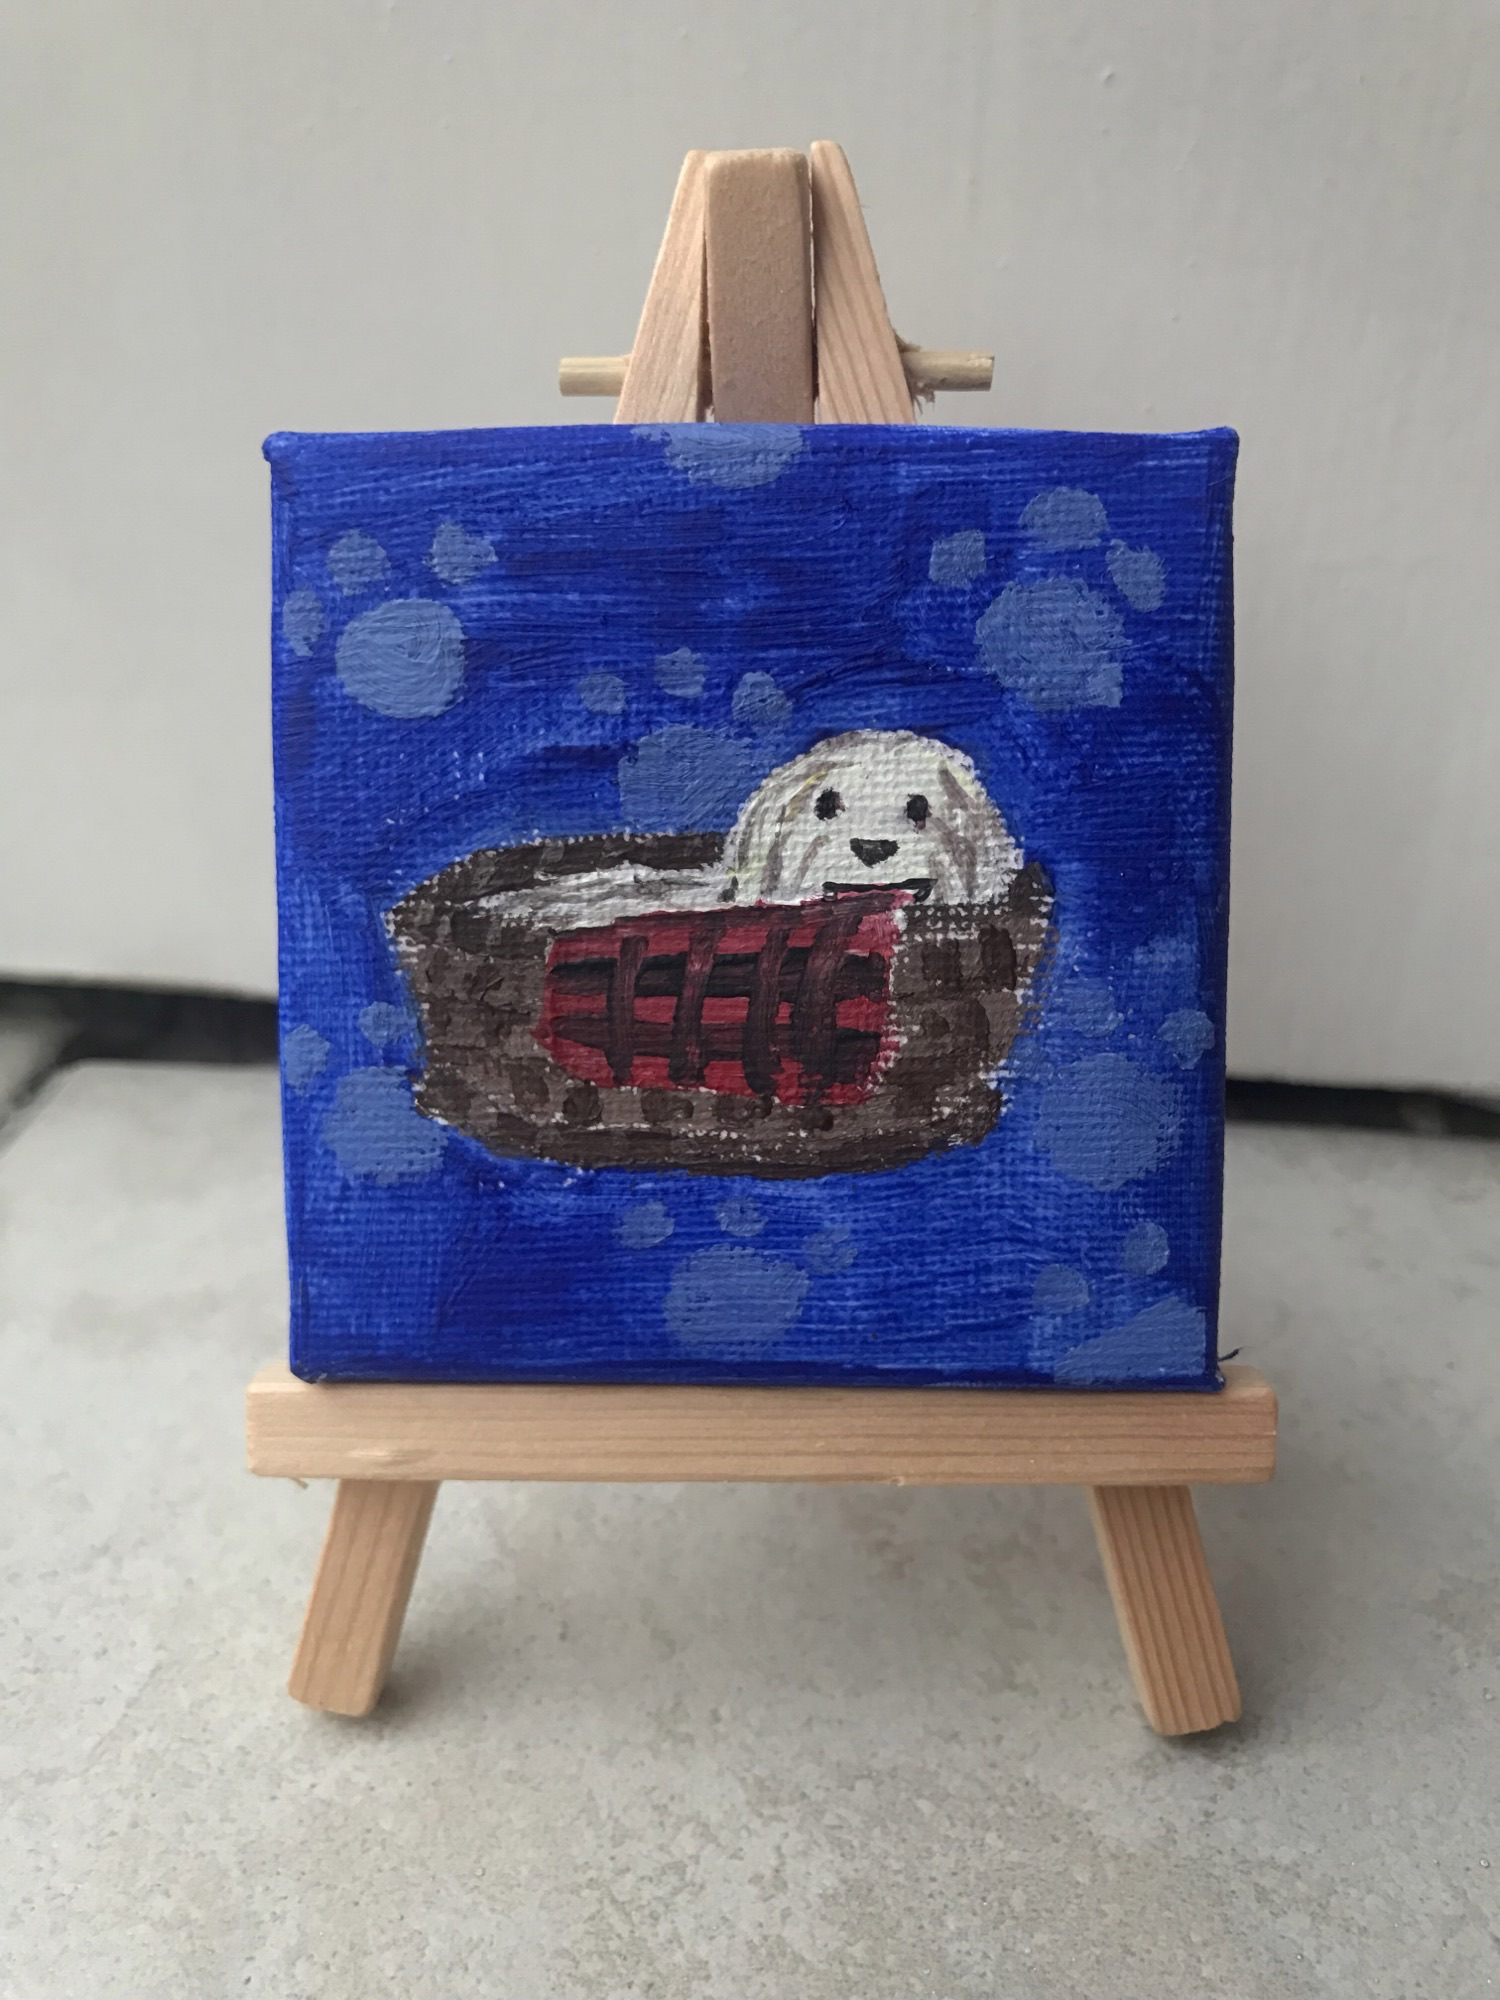 Dog in basket. The dog is a white and grey bearded collie. The basket is brown and made of reed and has a black and red checkered blanket hanging over the edge. The background is dark blue and has light blue paw prints on it. The painting is on a small easel.